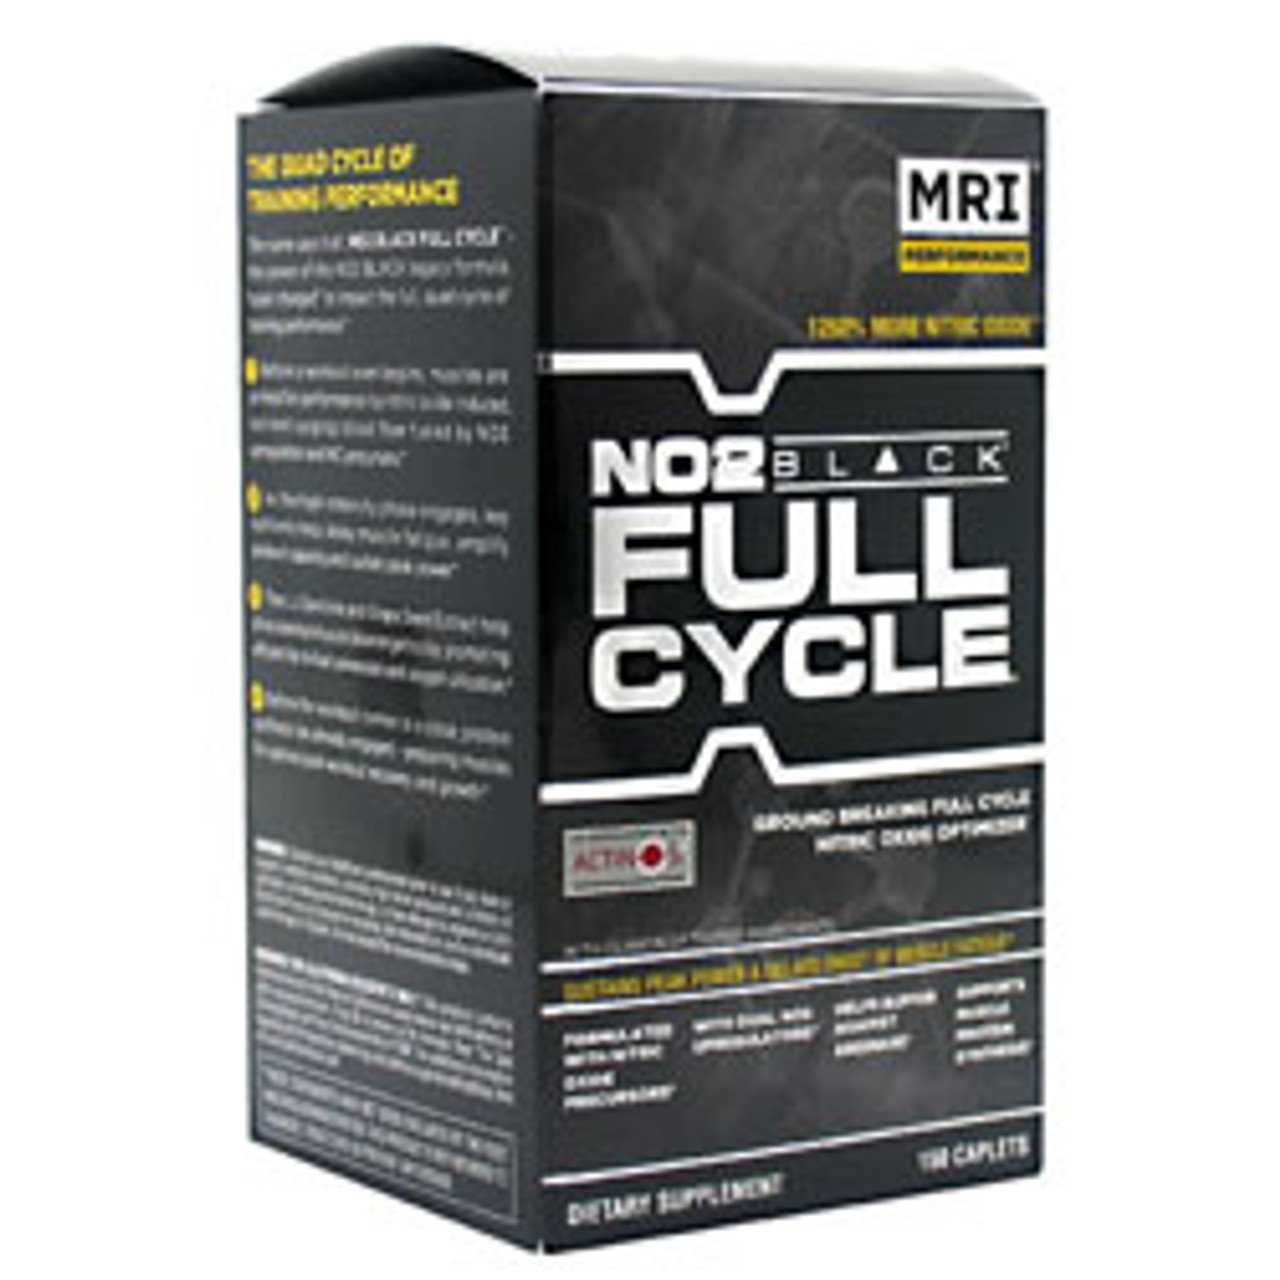 No2 Black Full Cycle 150ct MRI